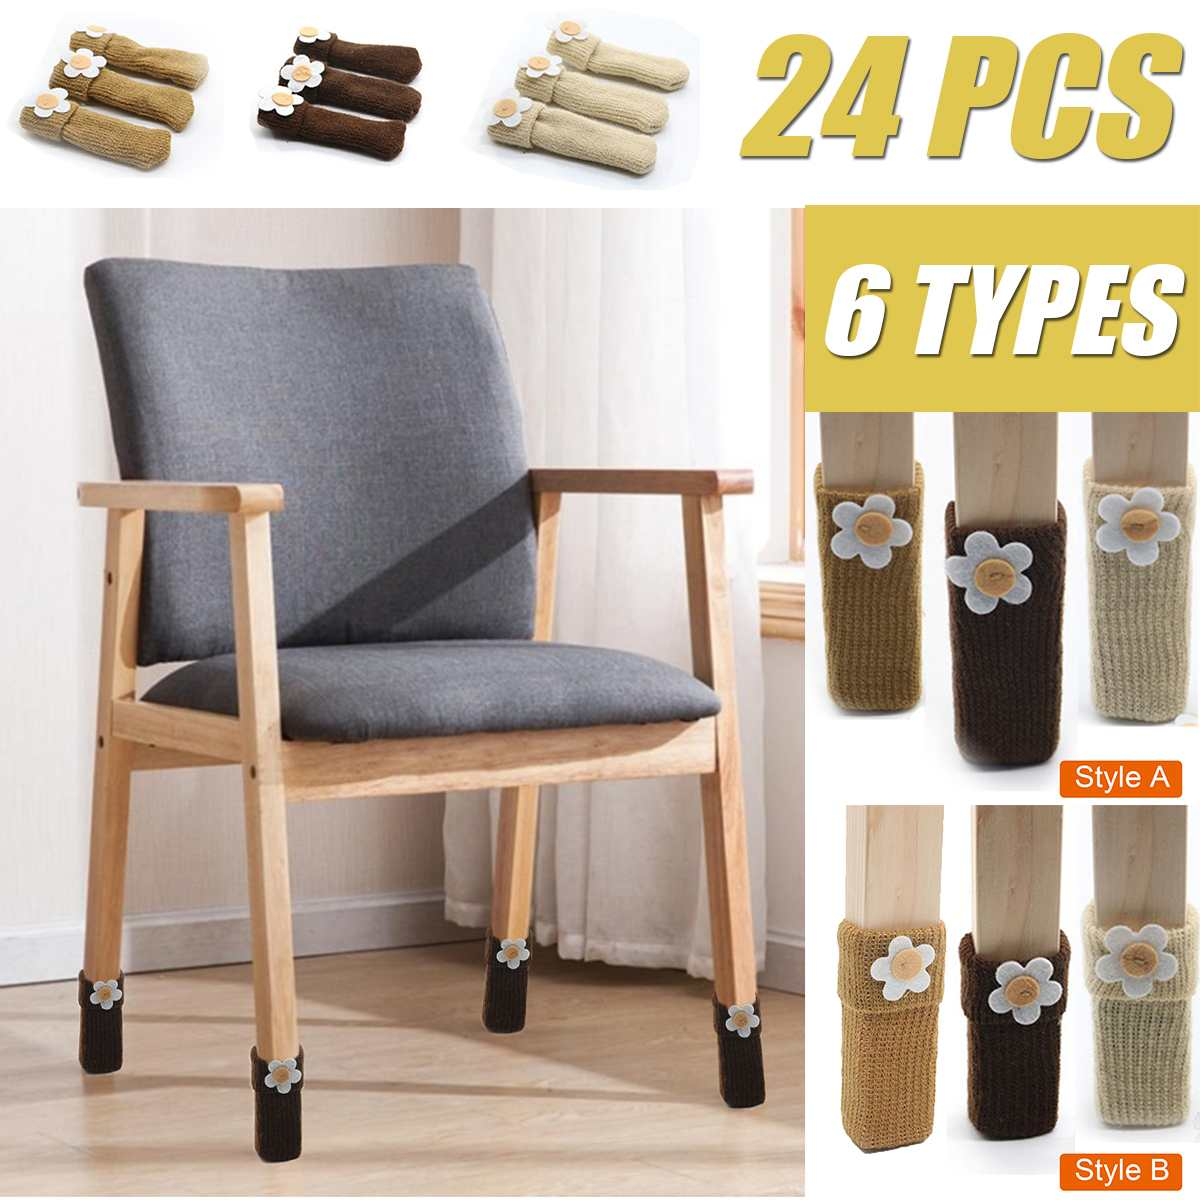 24PCS Floral Chair Leg Socks Elastic Thick Bottom Furniture Booties Floor Protector Non-slip Table Legs Knitted Chair Feet Cover